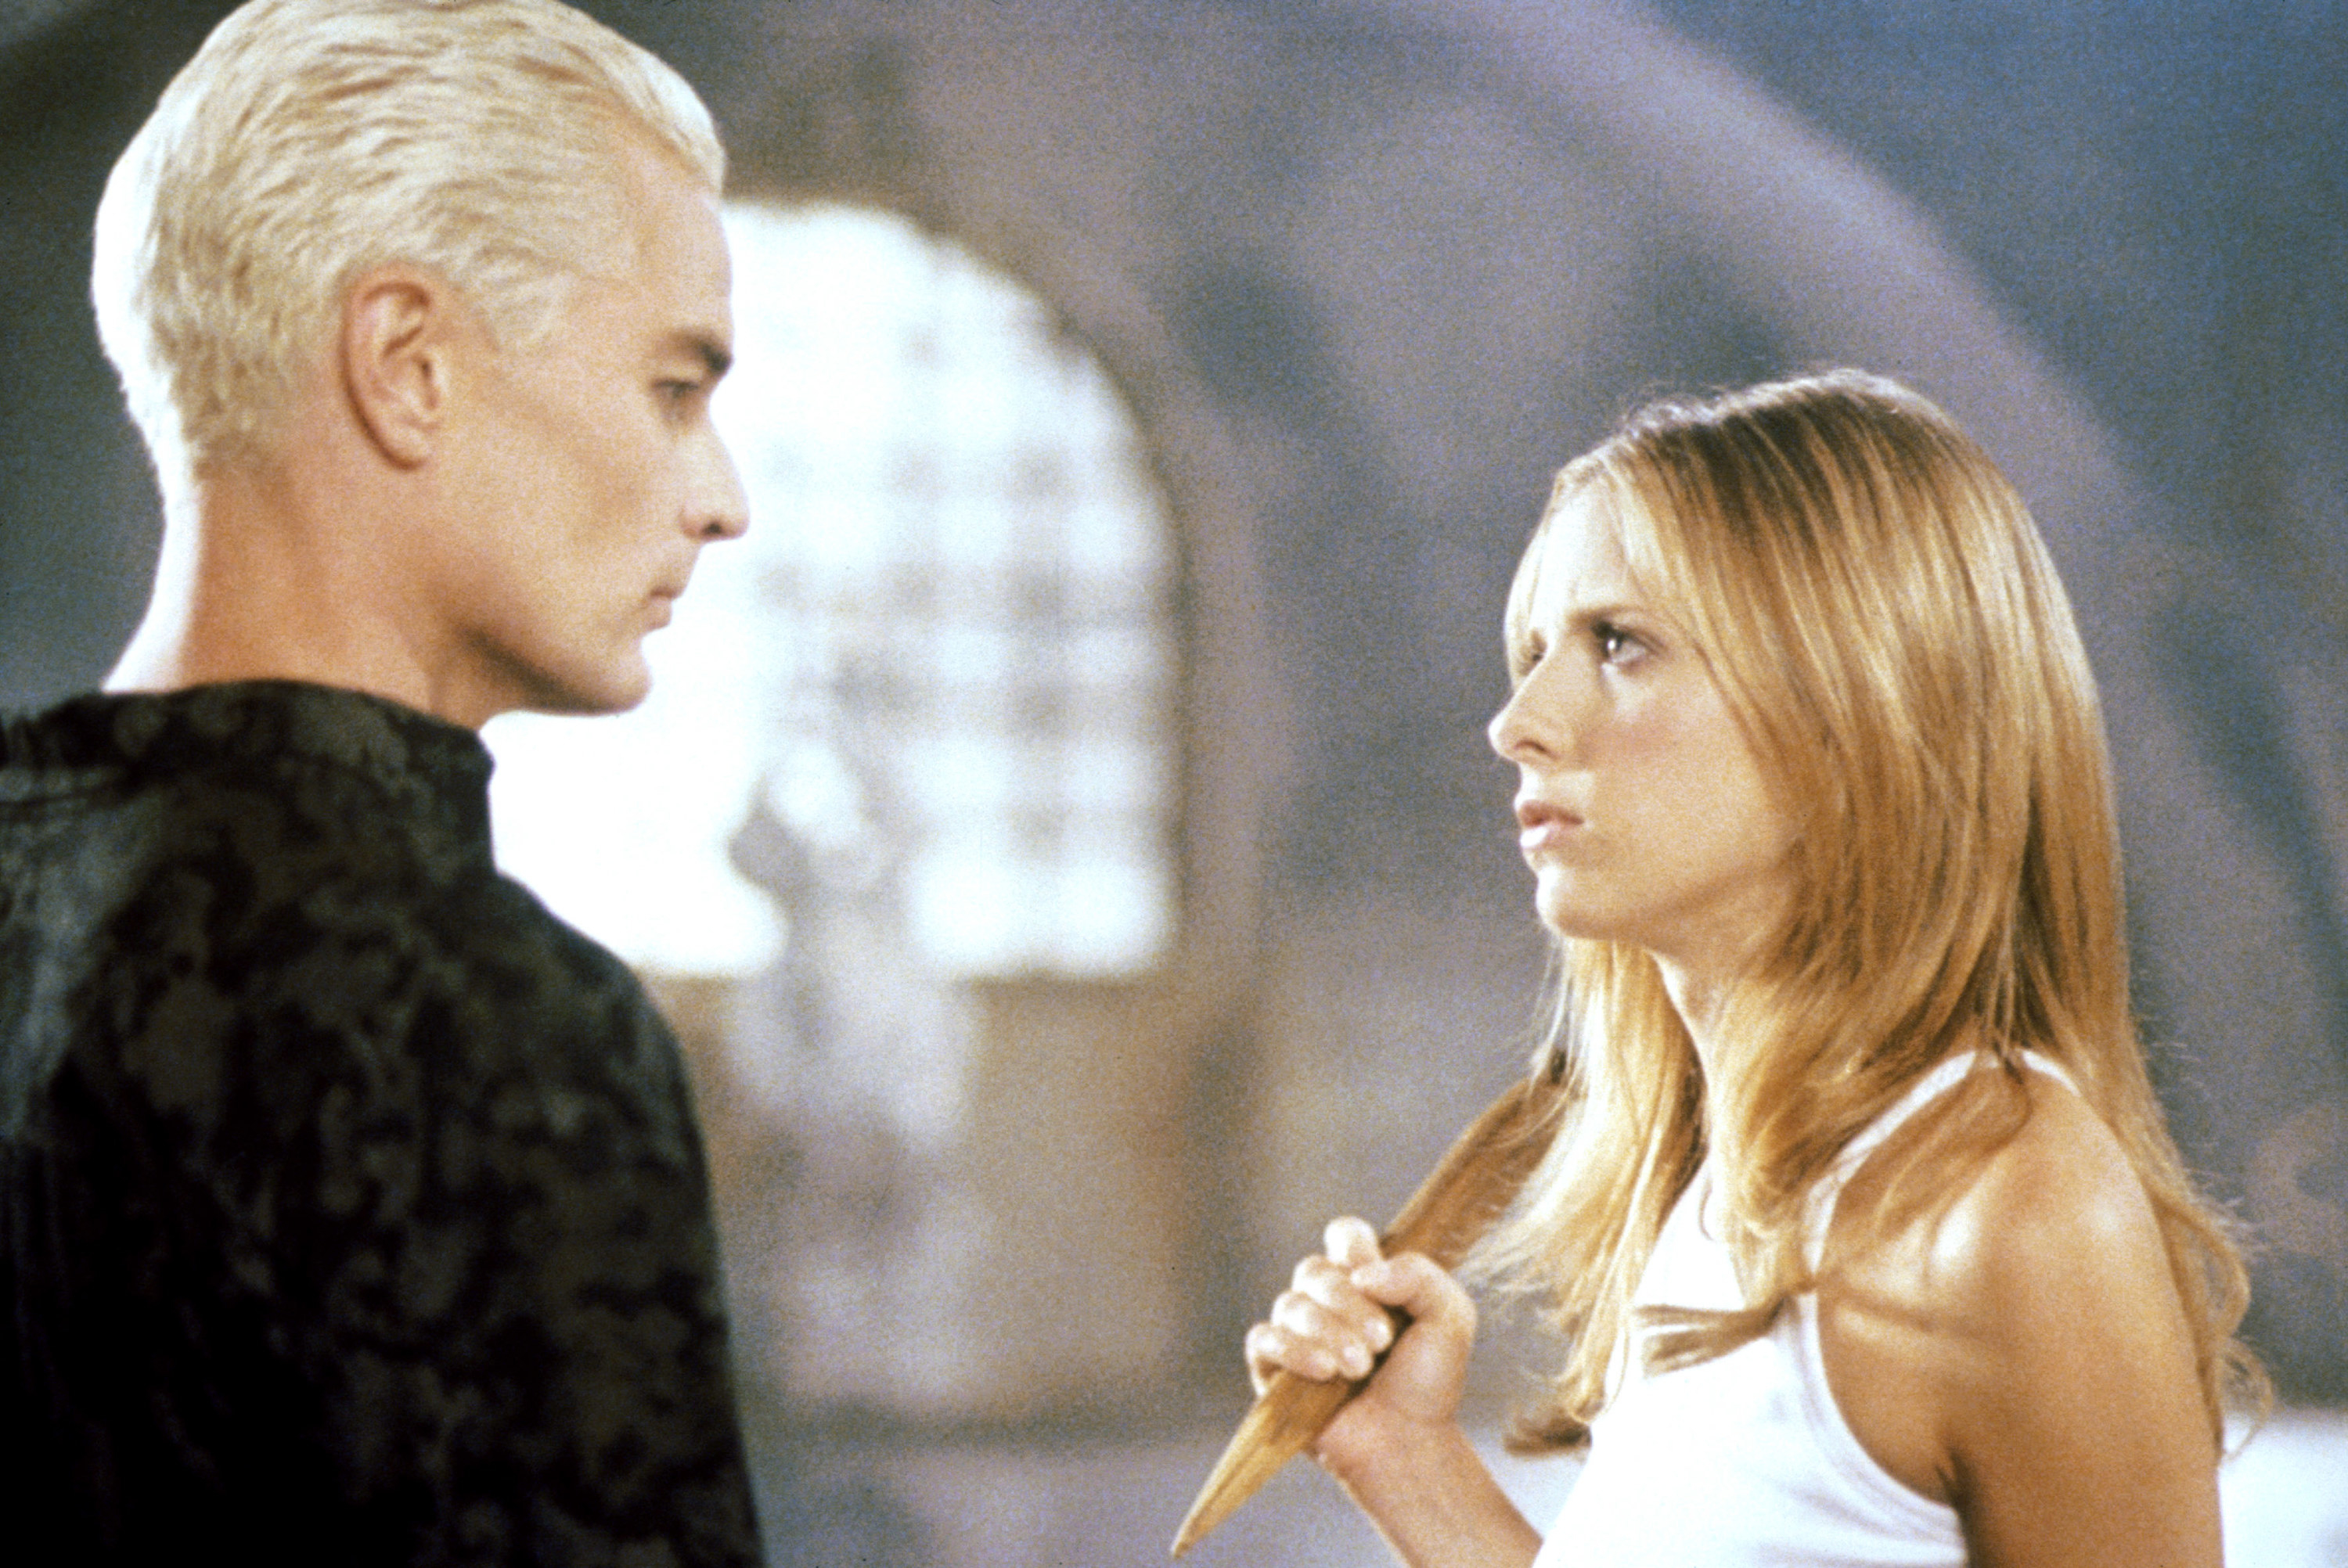 James Marsters and Sarah Michelle Gellar staring each other down